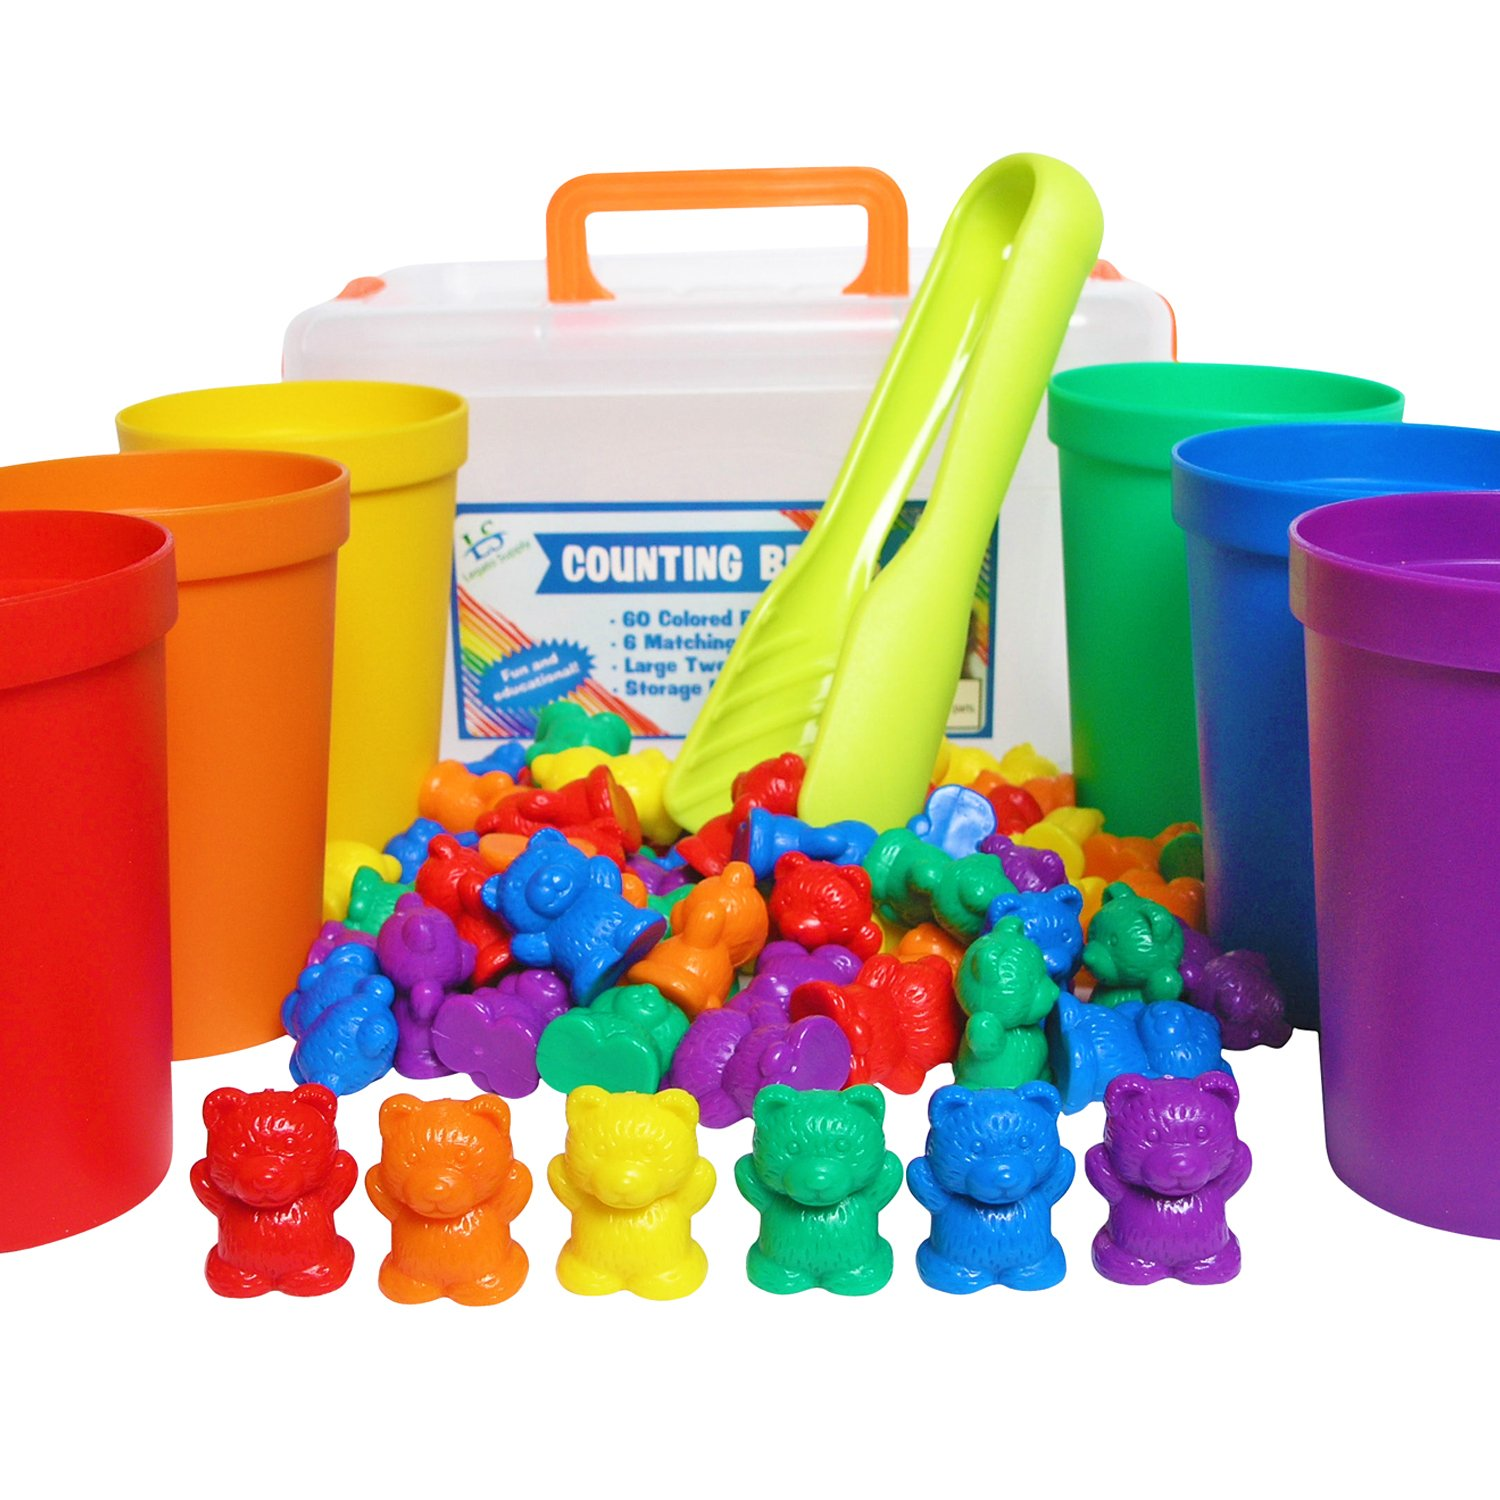 Legato Counting/Sorting Bears; 60 Rainbow Colored Bears, 6 Stacking Cups, Kids Tweezers, Storage Container, & Activity eBook! Quality Educational Toy, Good for STEM and Montessori Programs.